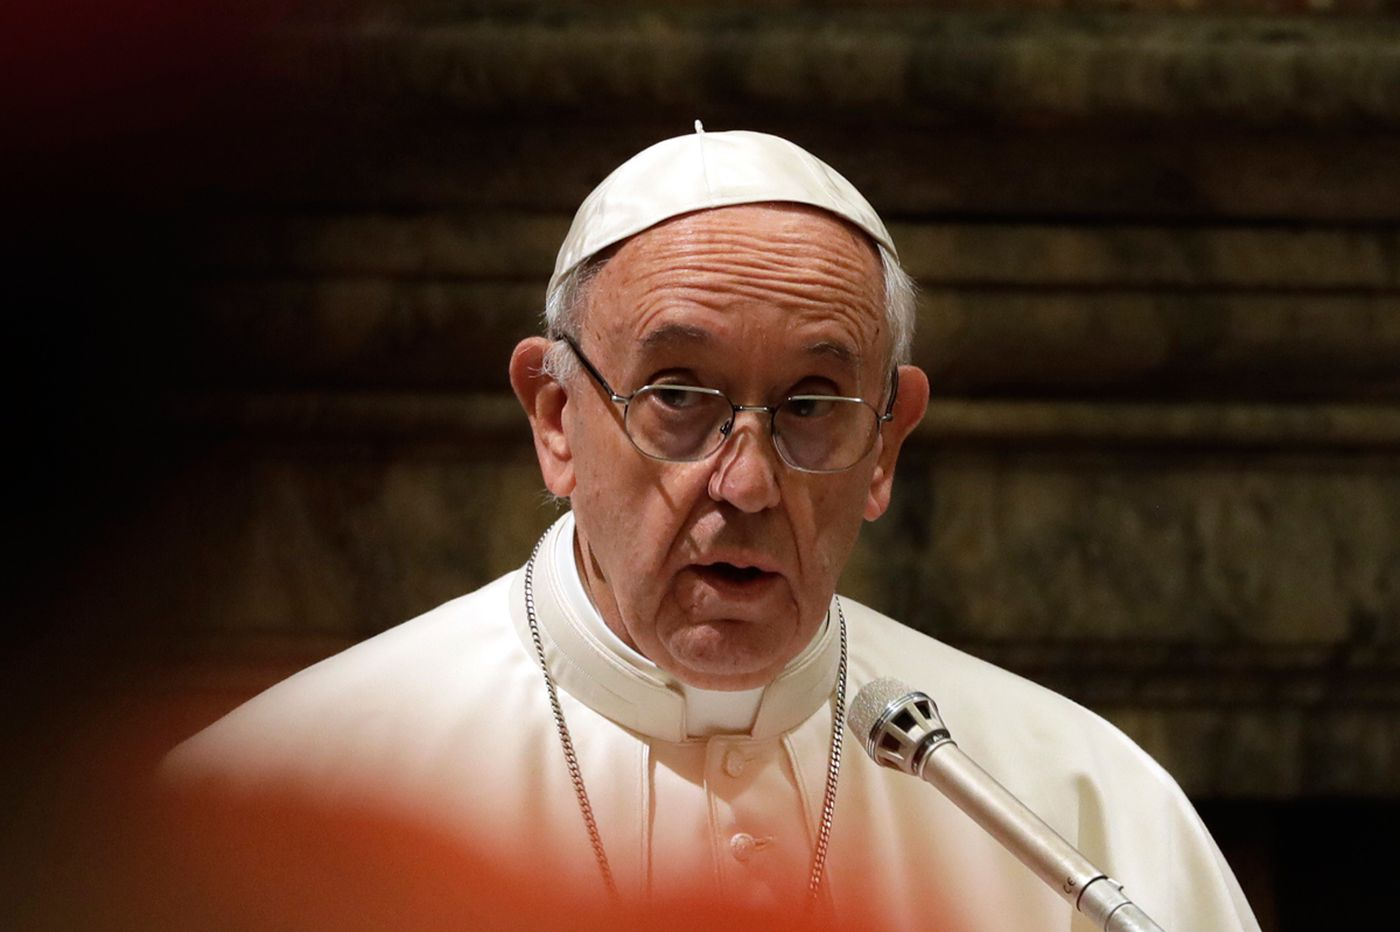 Pope Francis is waging a war on Christmas. Christians should join him.